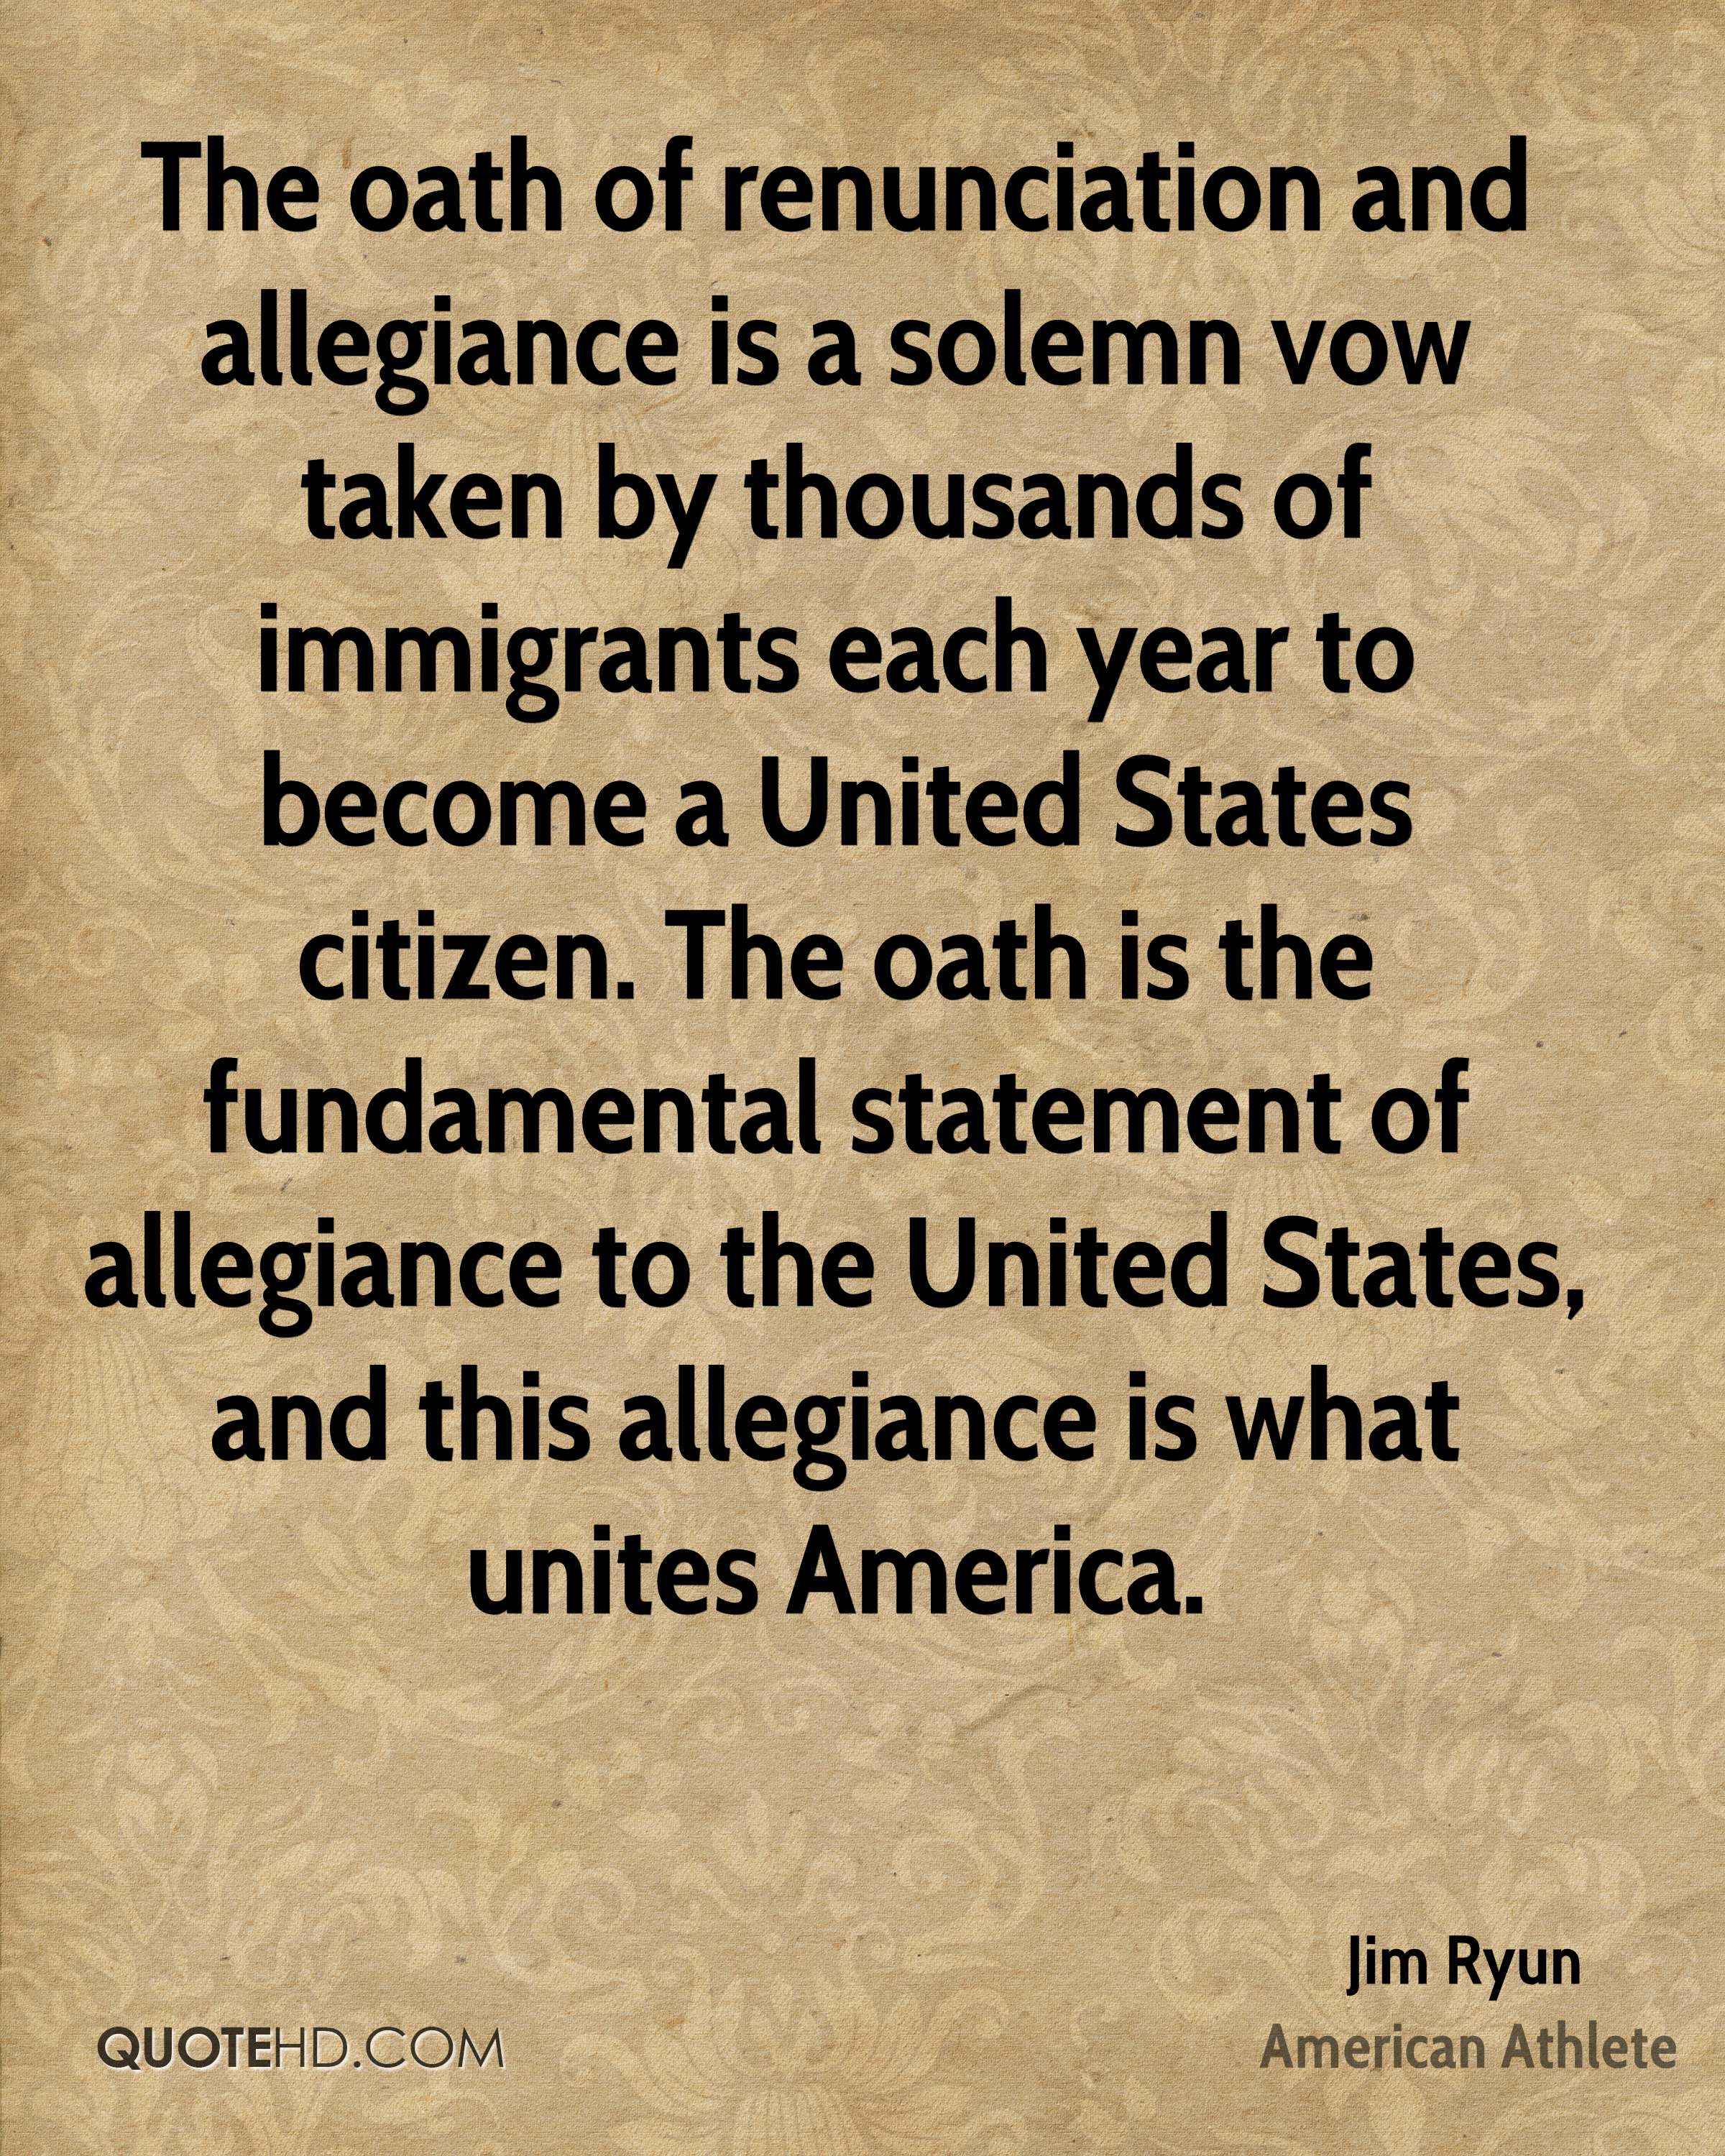 The oath of renunciation and allegiance is a solemn vow taken by thousands of immigrants each year to become a United States citizen. The oath is the fundamental statement of allegiance to the United States, and this allegiance is what unites America.